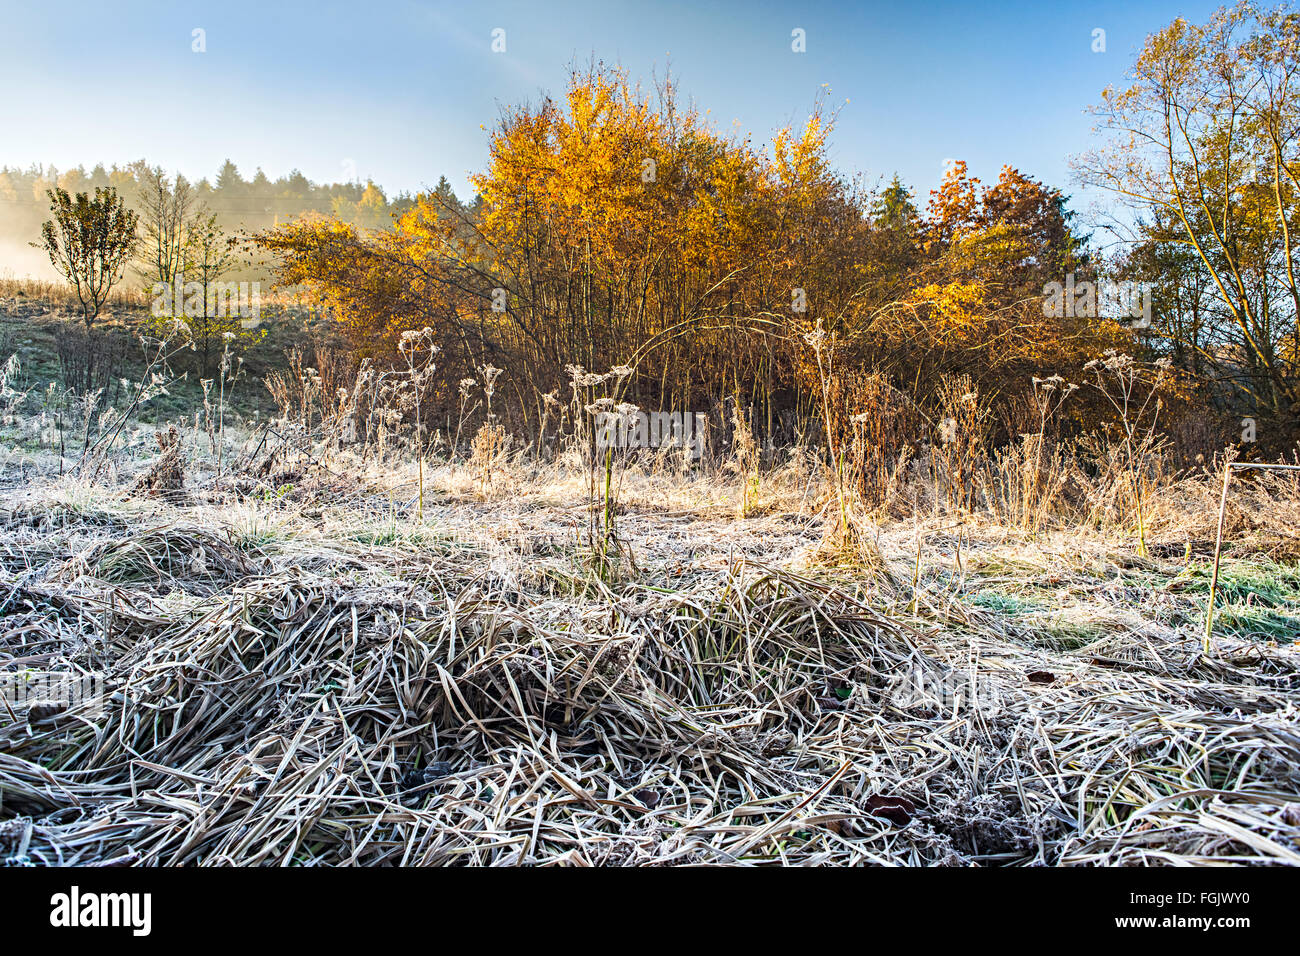 Frost on the ground in autumn - Stock Image